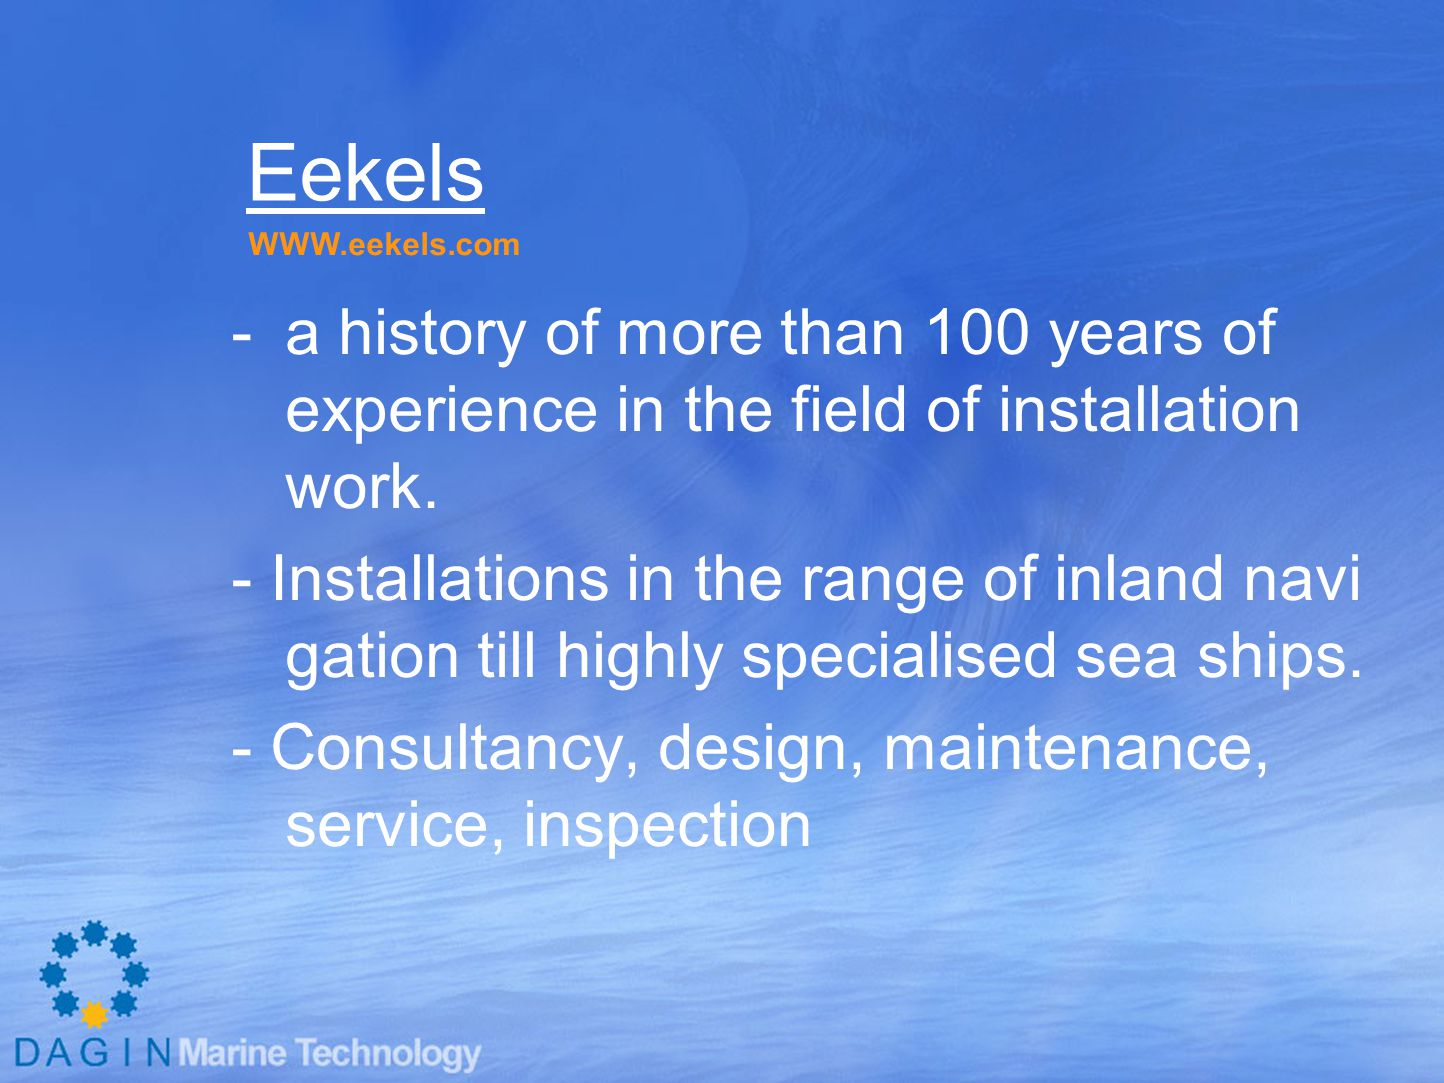 Eekels -a history of more than 100 years of experience in the field of installation work.